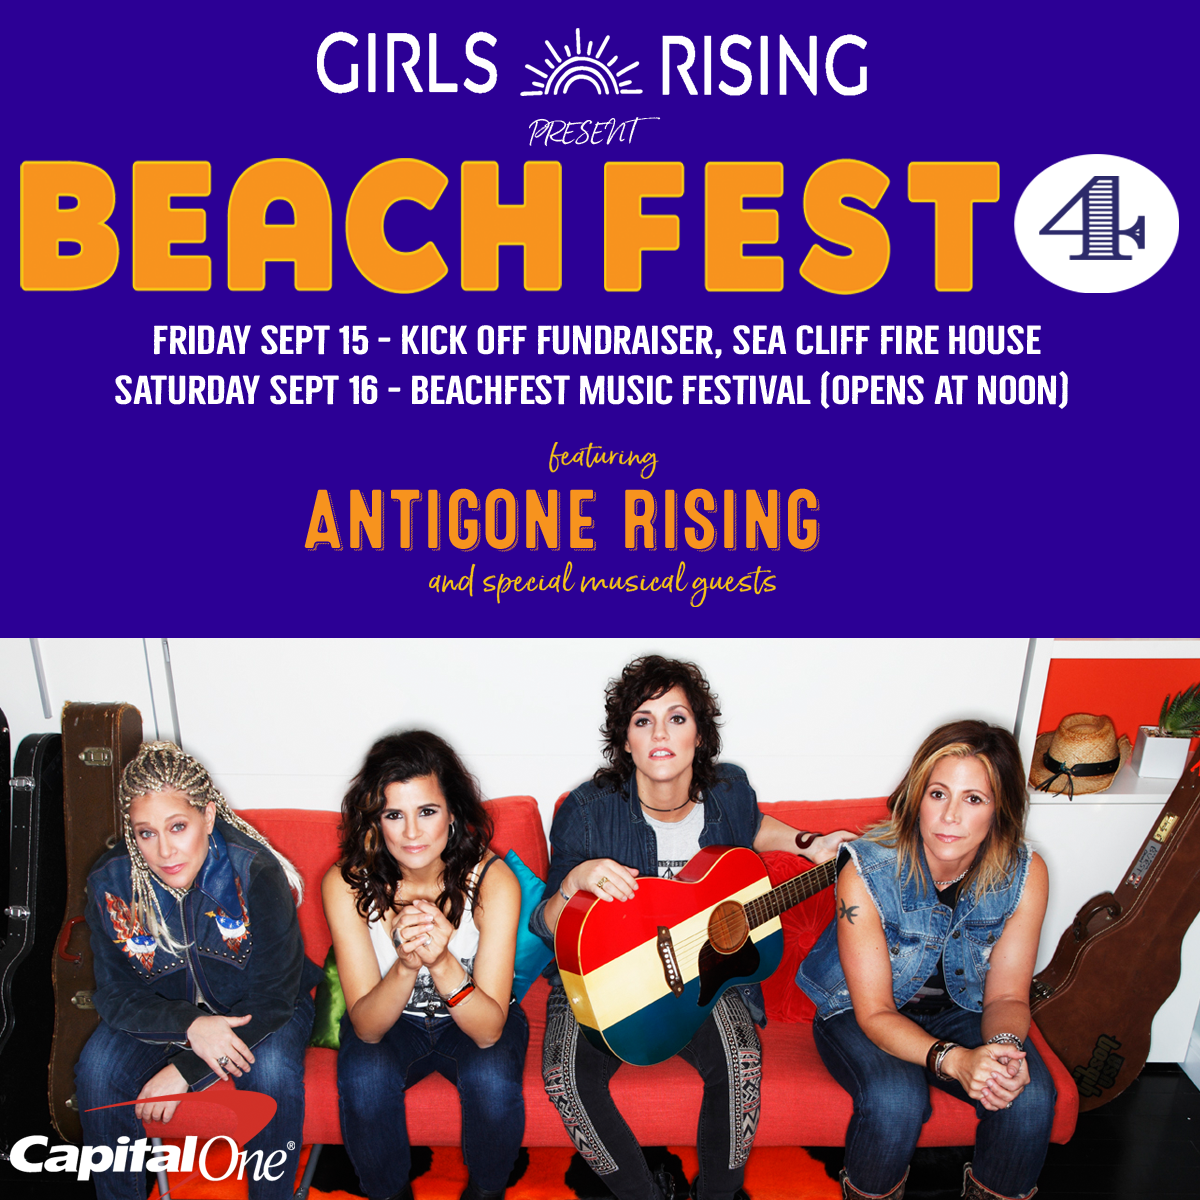 Girls Rising and Capital One Present 4th Annual BeachFest Weekend 9/15-9/16, Sea Cliff NY